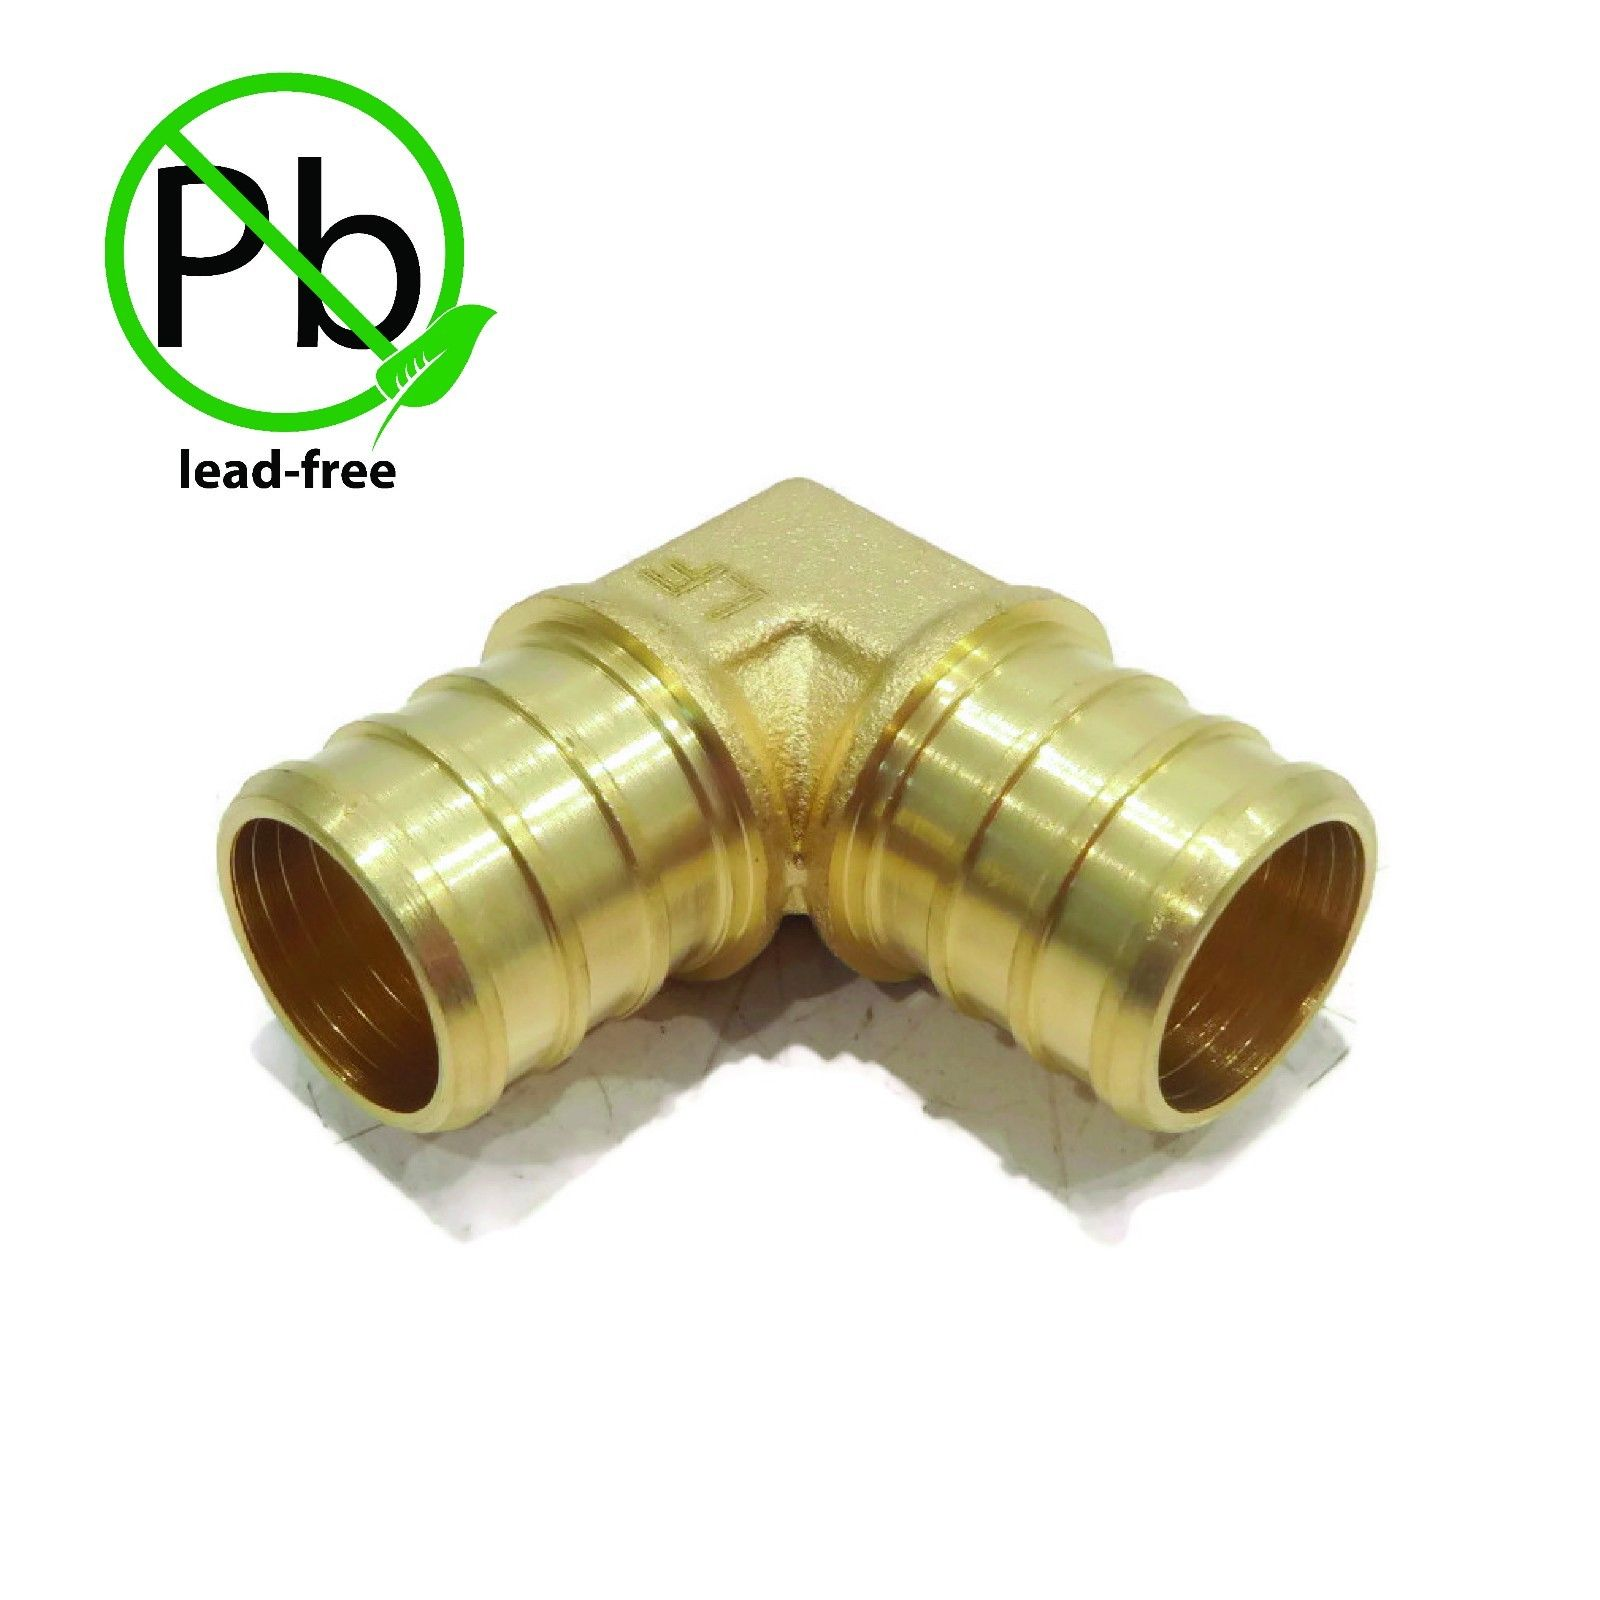 "3/4"" x 3/4"" PEX 90° BRASS LEAD FREE ELBOW Crimp Fitting replaces Everhot BPF6805 by The ROP Shop"